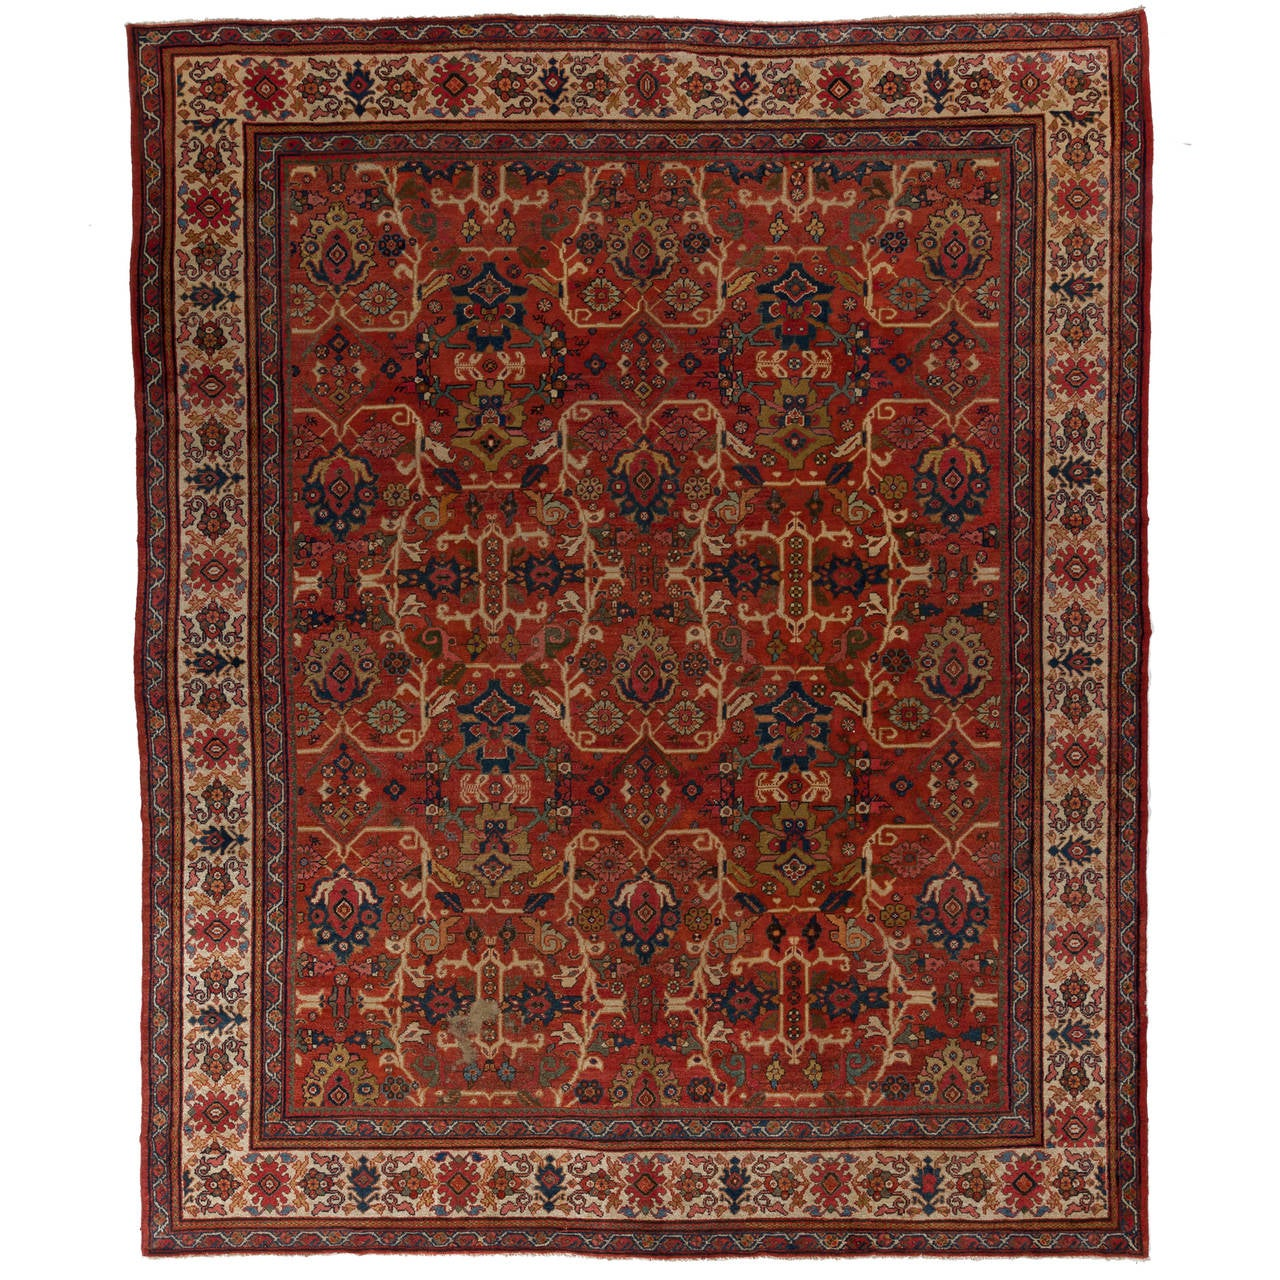 Persian Rugs For Sale: Impressive Antique Persian Mahal Rug For Sale At 1stdibs